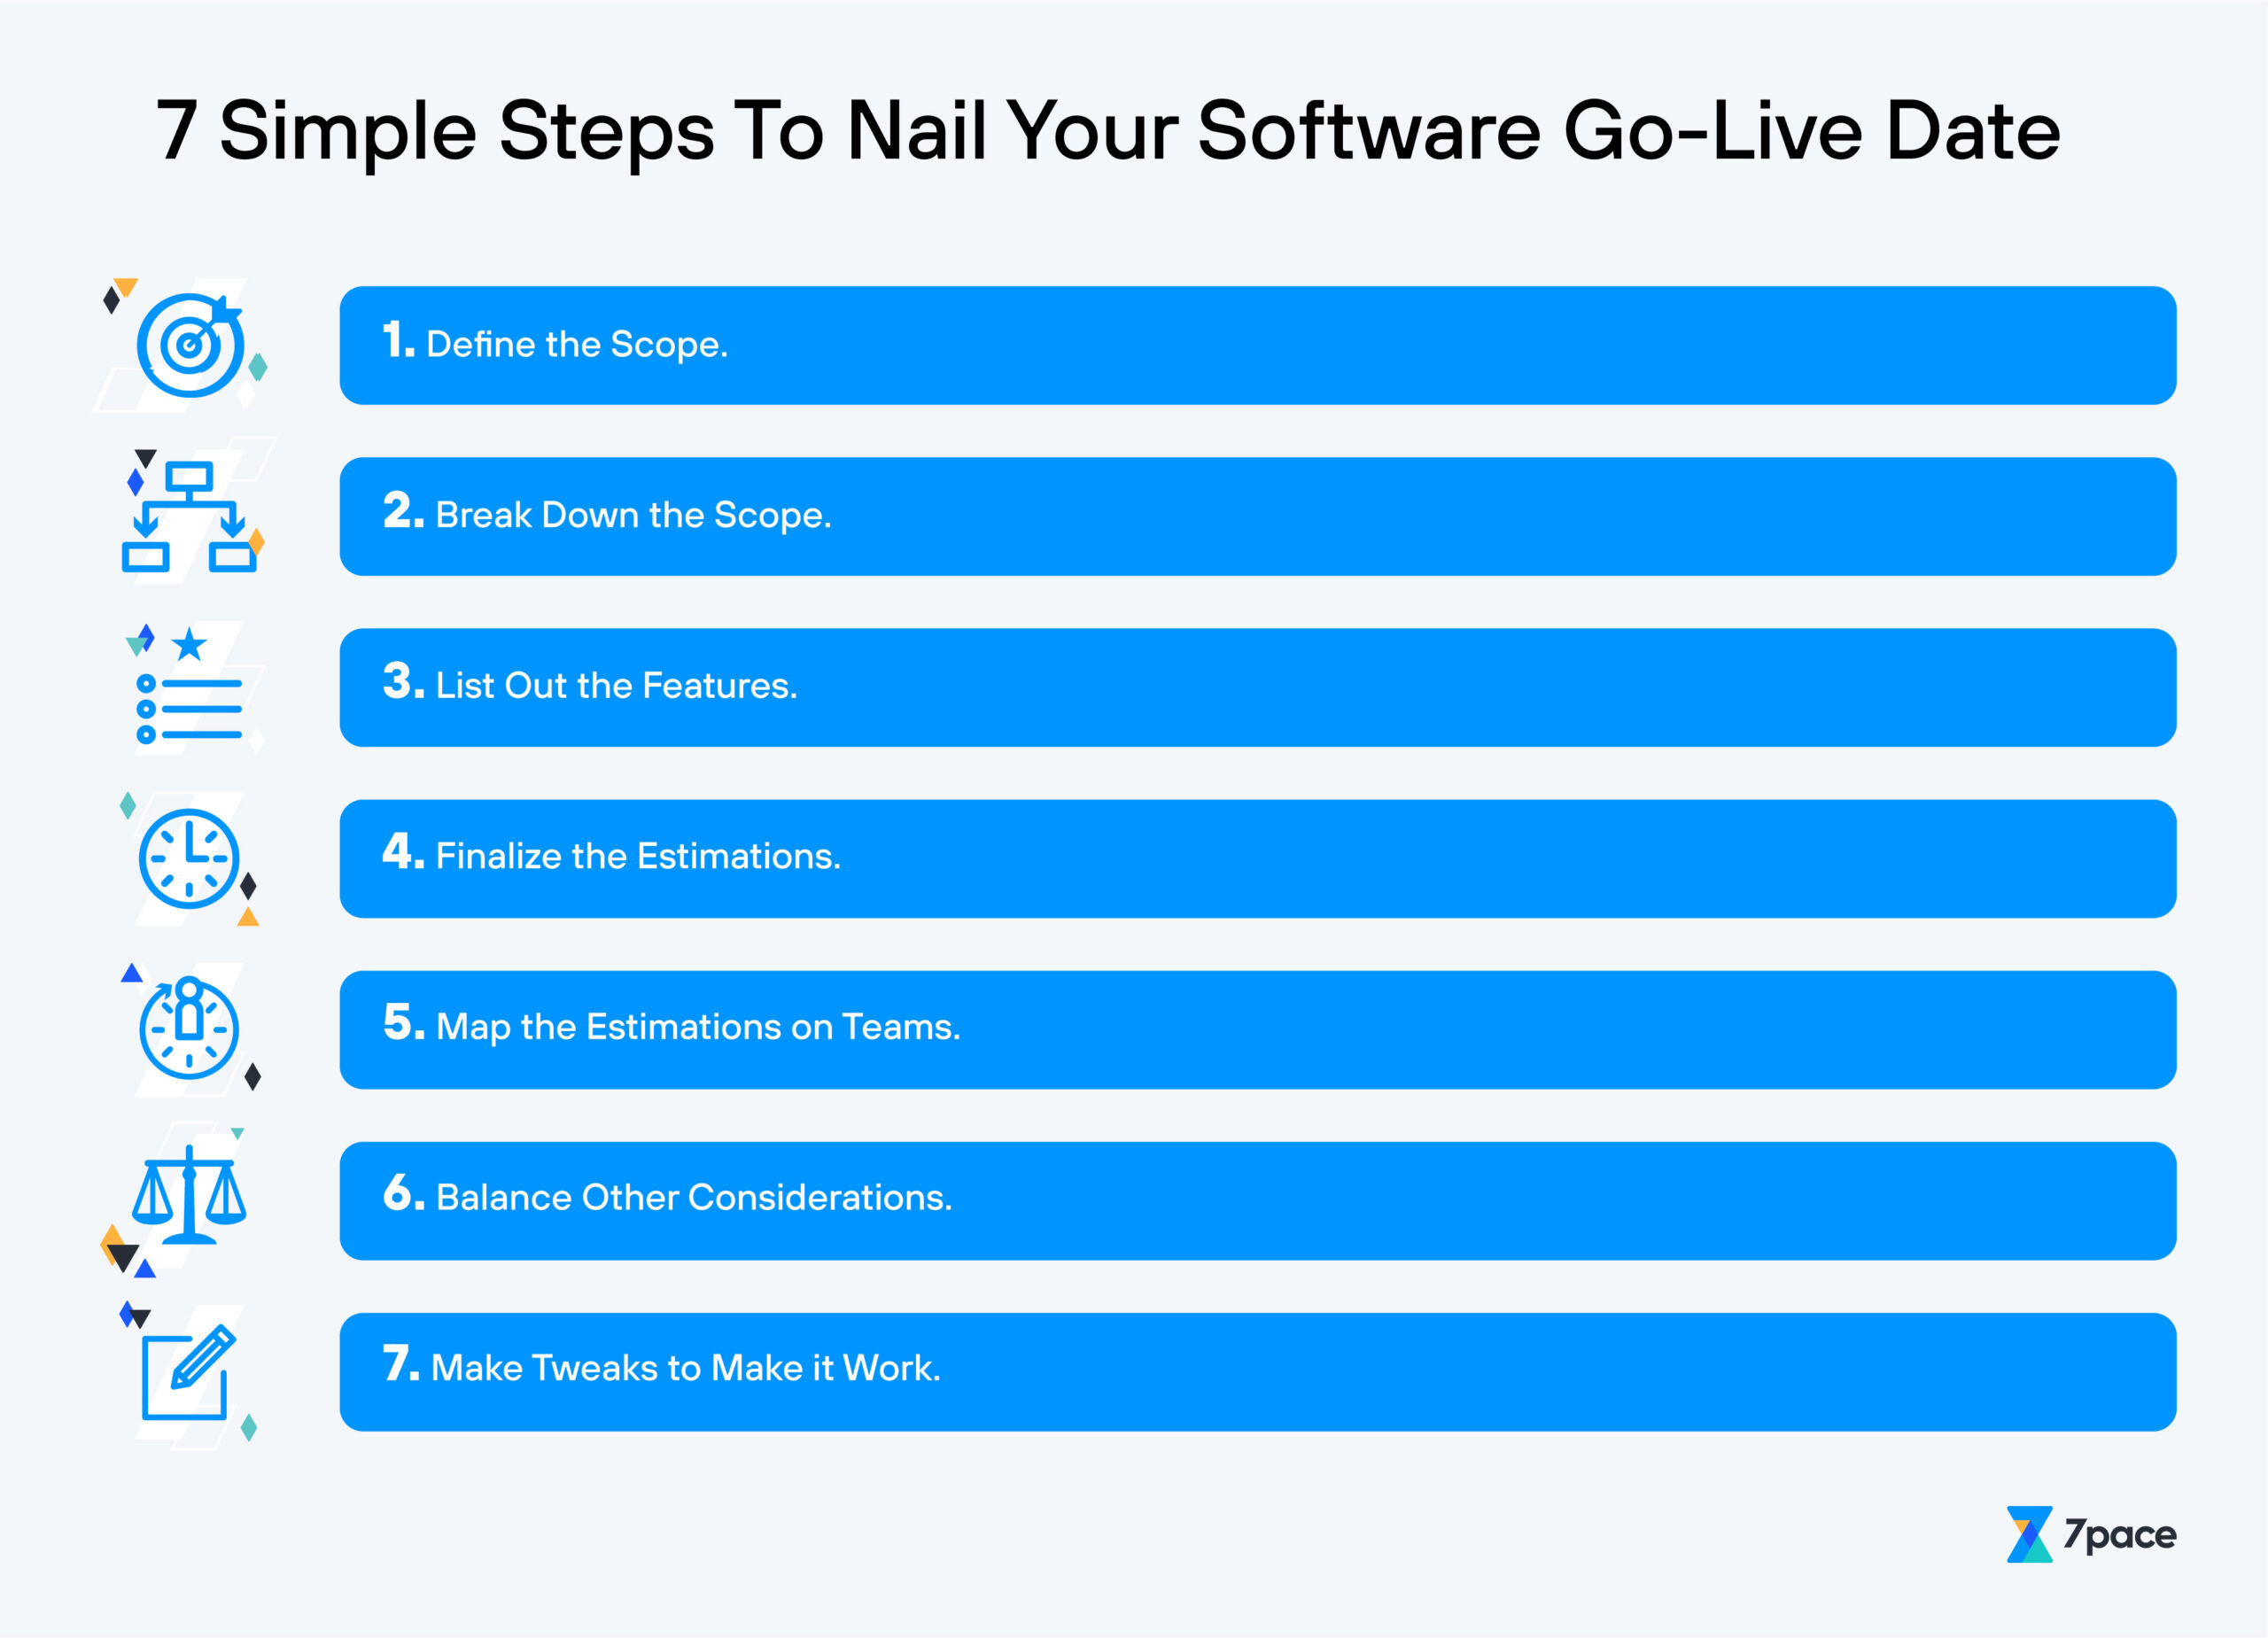 7 steps to nail down your software go live date